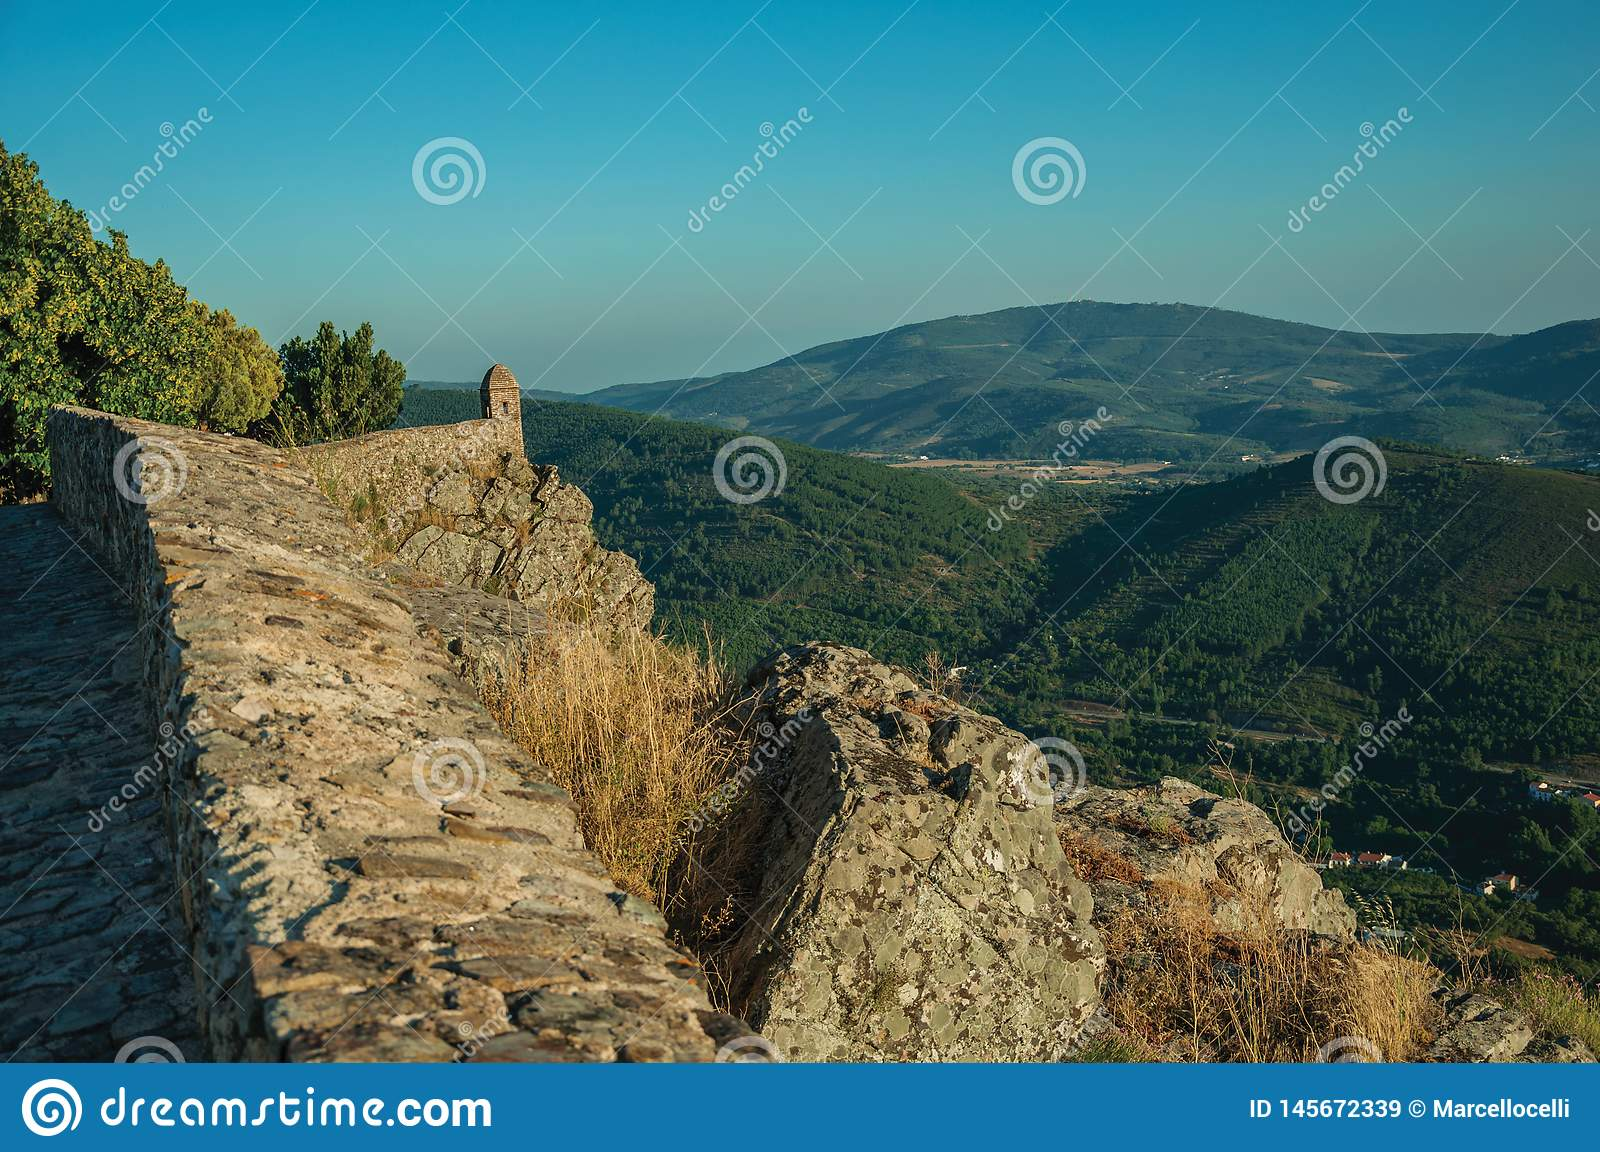 Small watchtower and stone wall over cliff with mountainous landscape